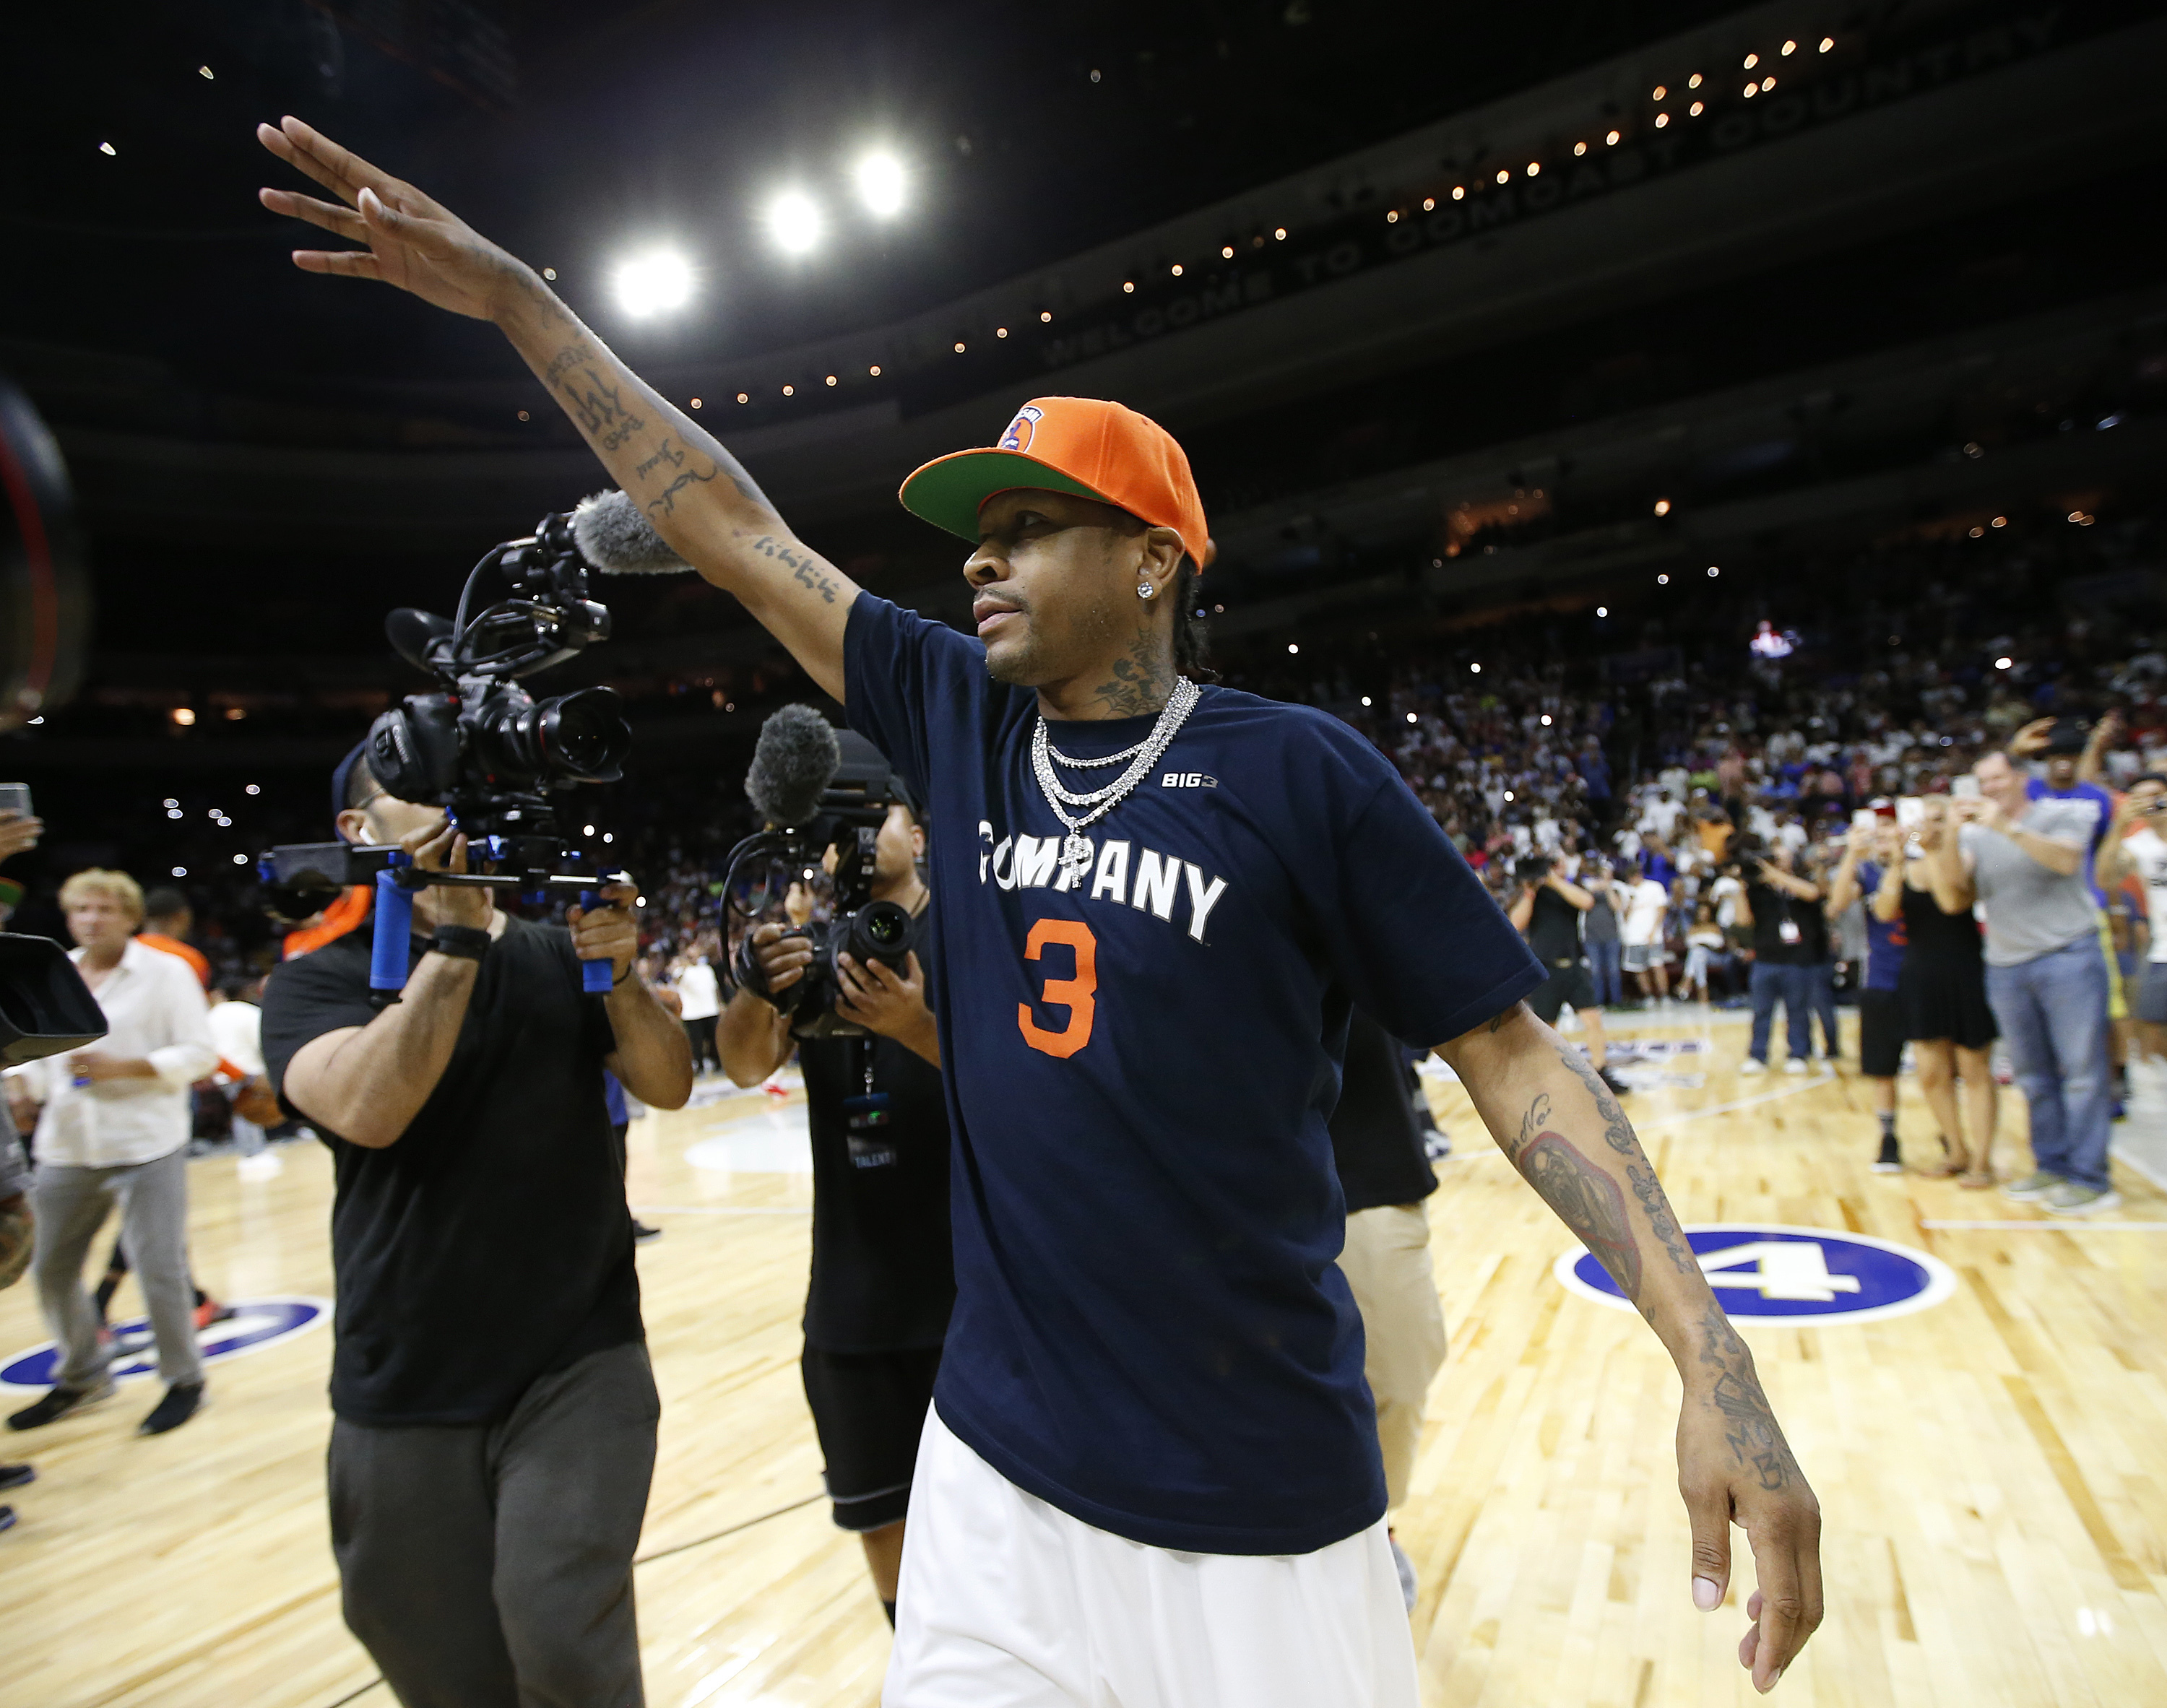 Allen Iverson acknowledges the hometown fans during his introduction before a BIG3 Basketball League in Philadelphia. He did not play in the game.